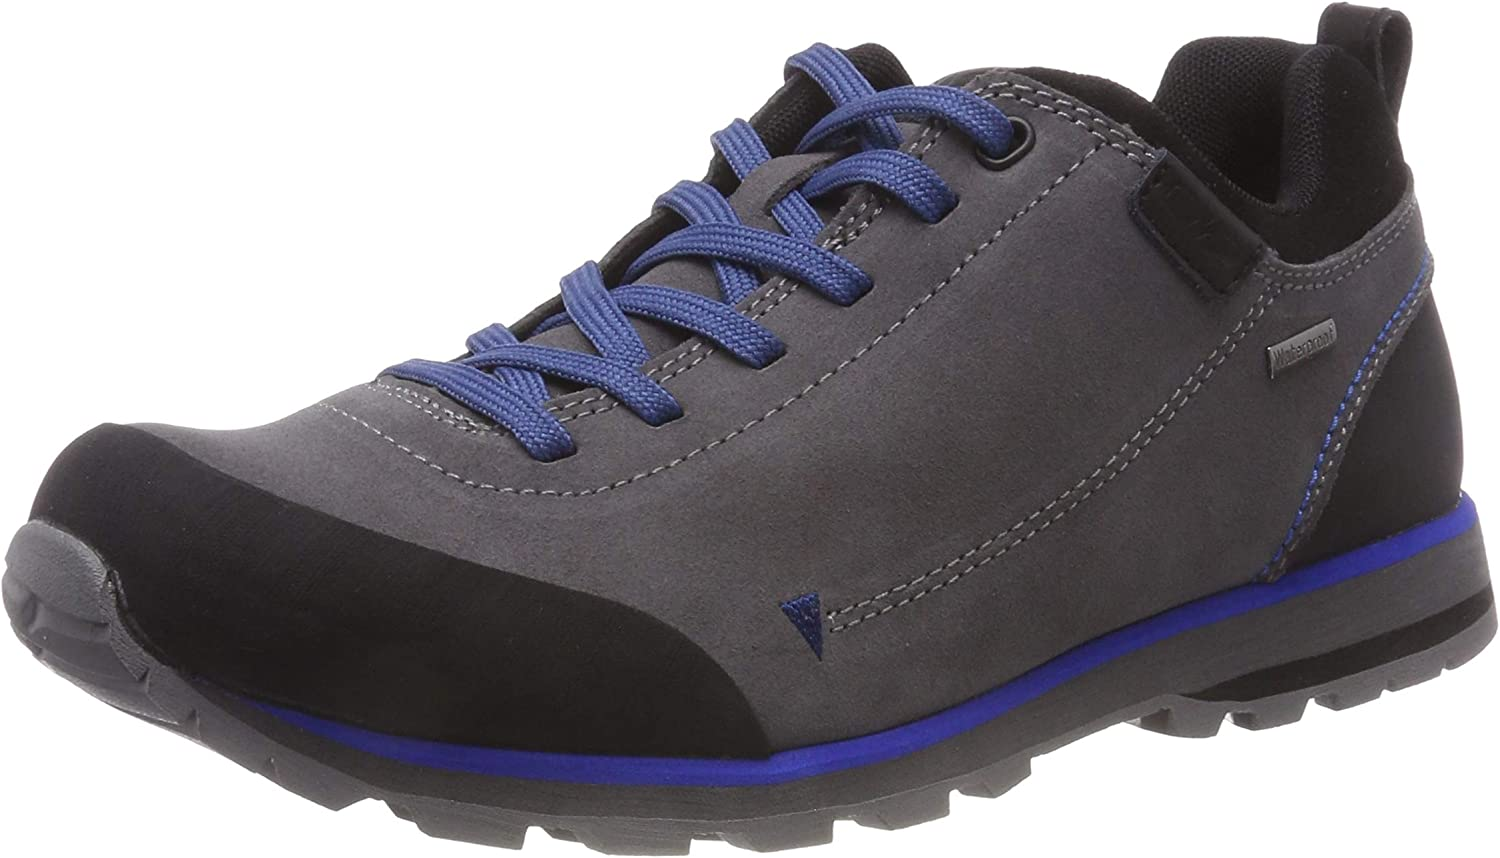 CMP Men's Elettra Low Rise Hiking Boots